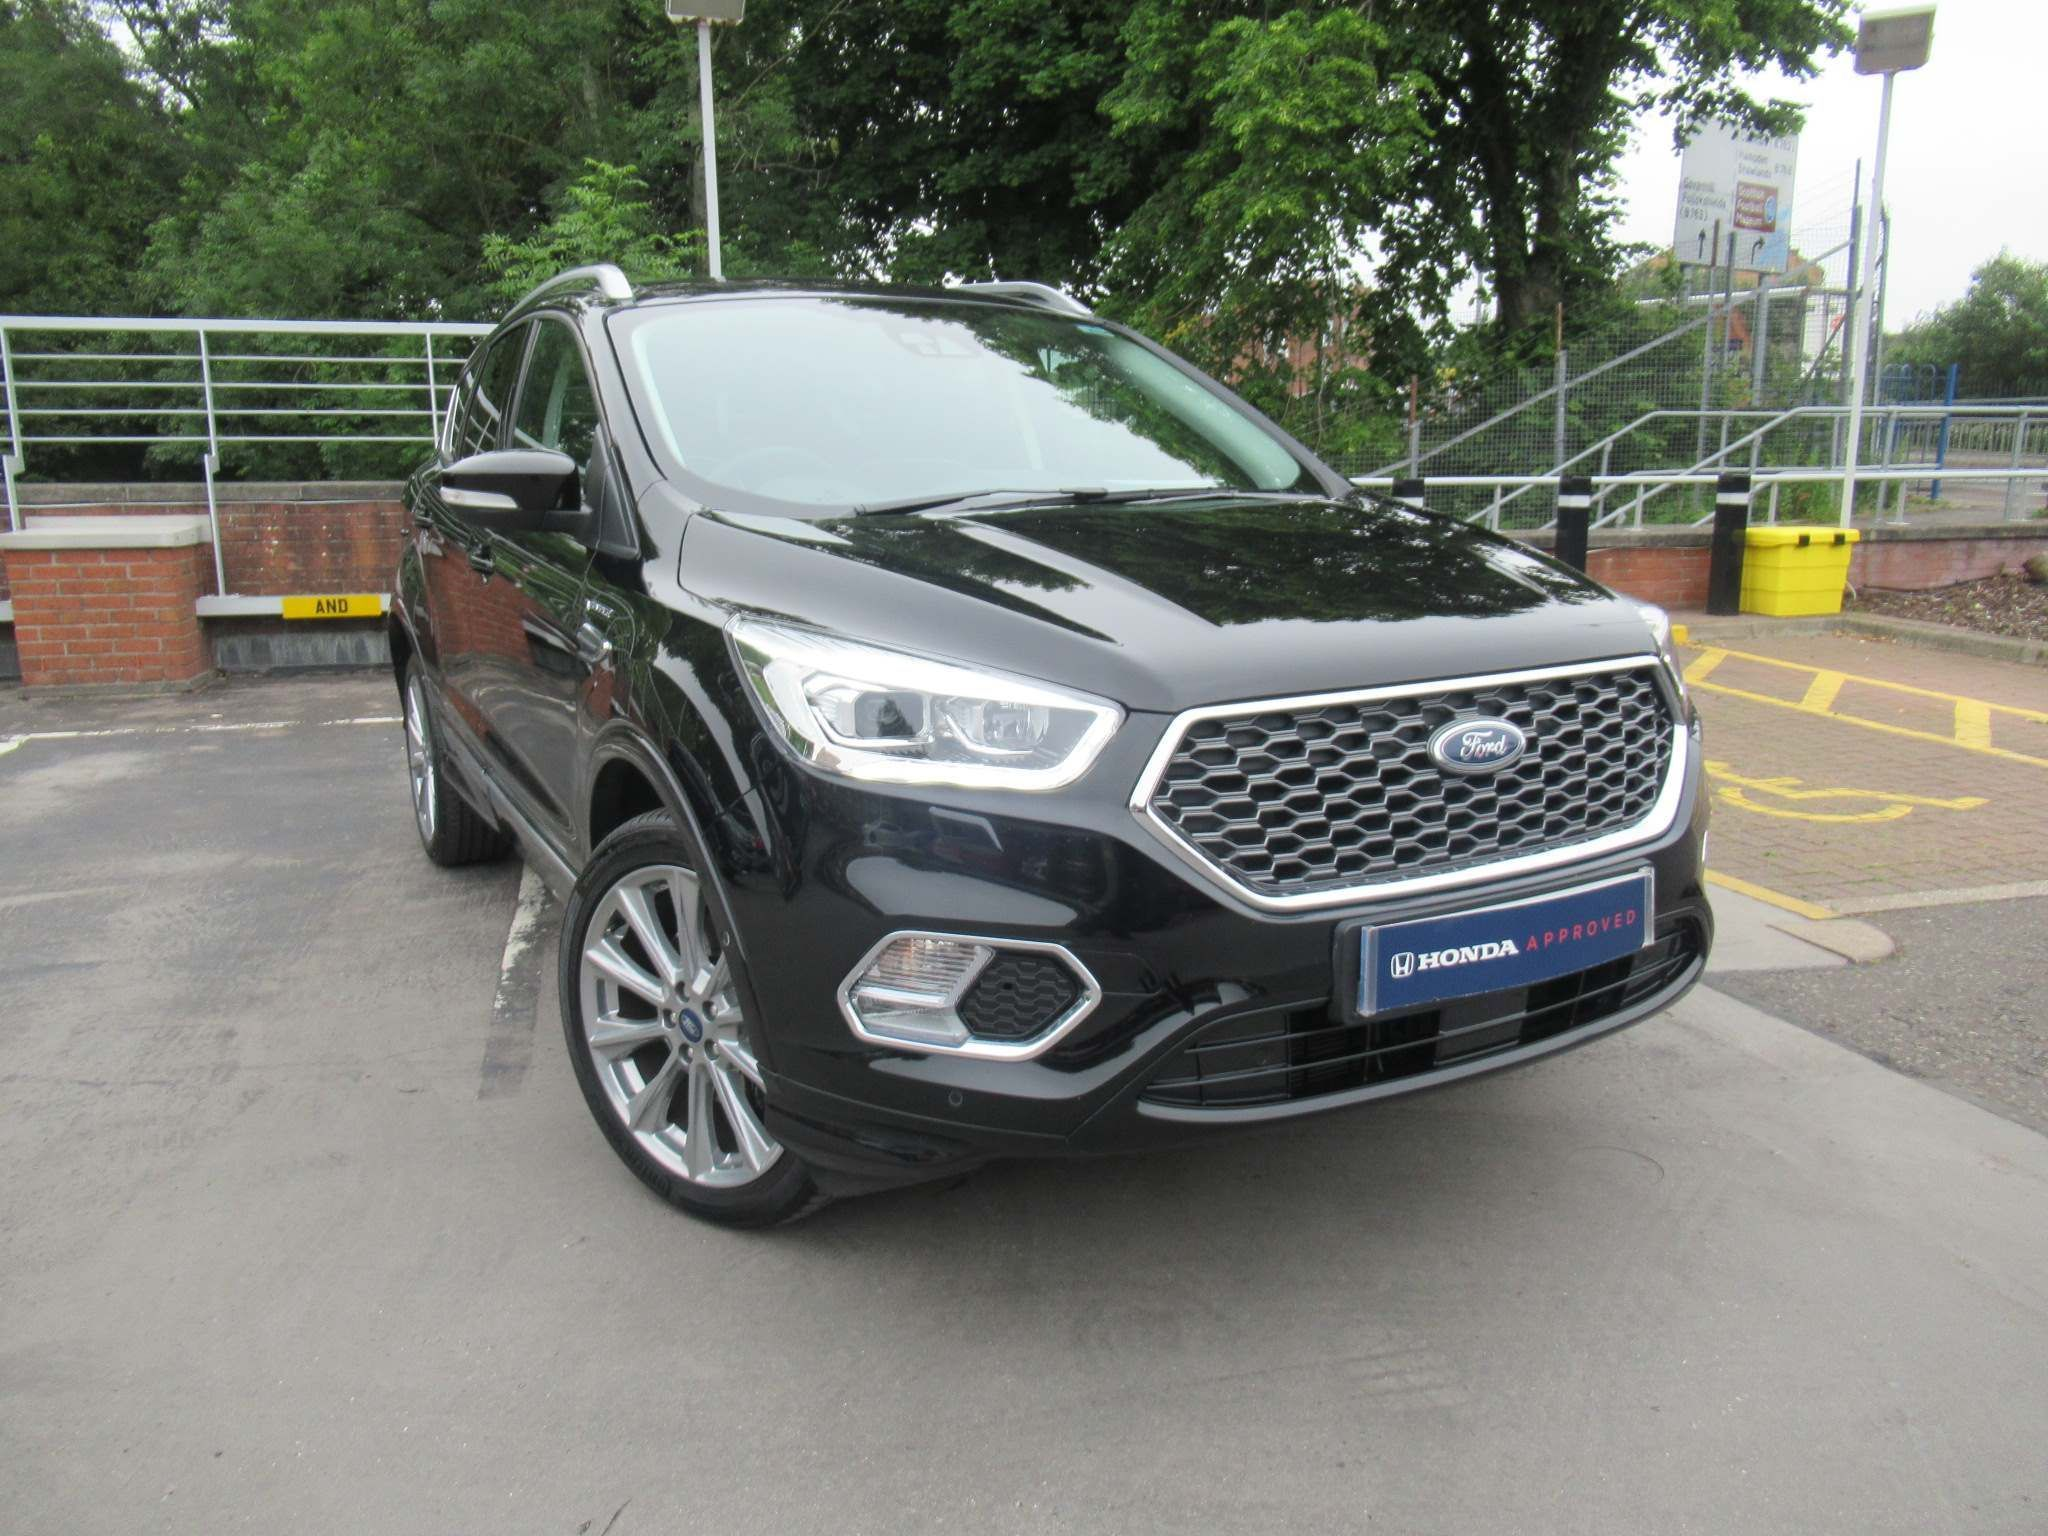 Ford Kuga 1.5T EcoBoost Vignale Auto AWD (s/s) 5dr